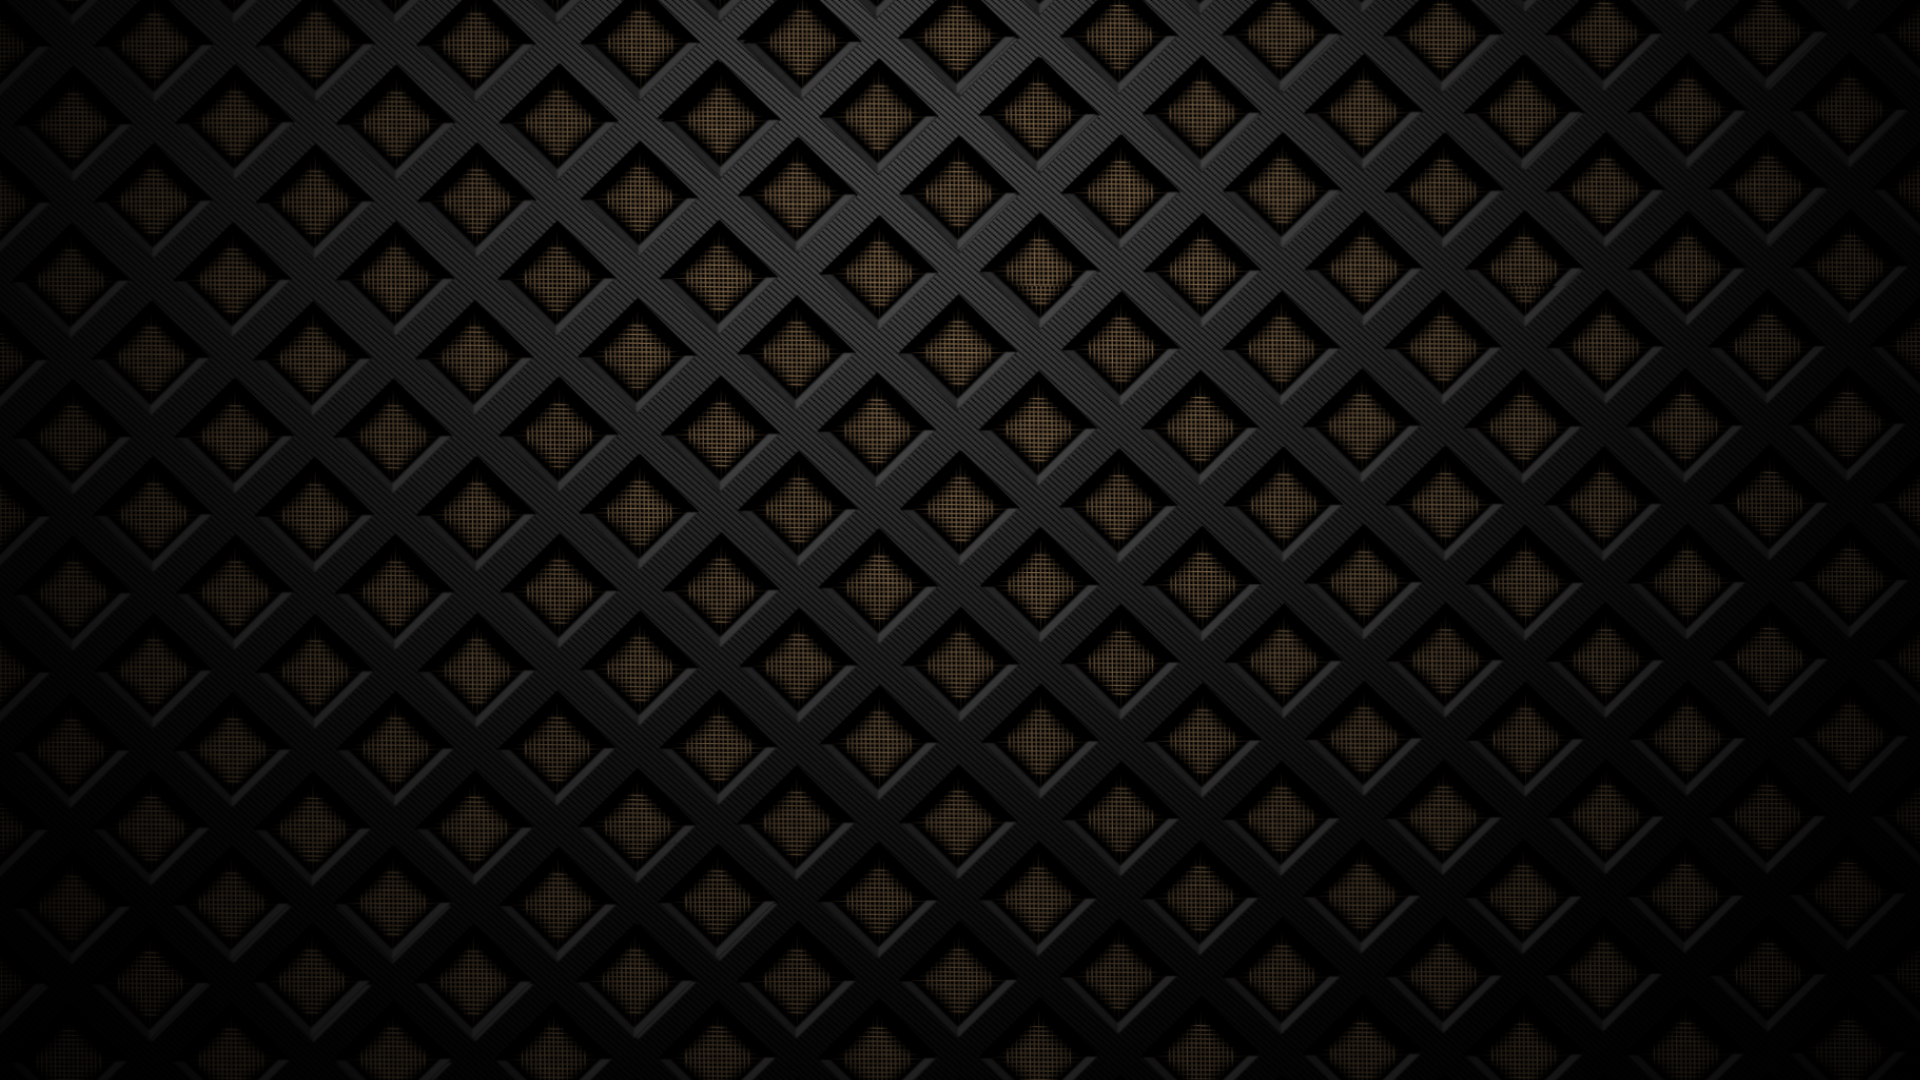 110 Super Hd Textured And Patterned Wallpapers For Your